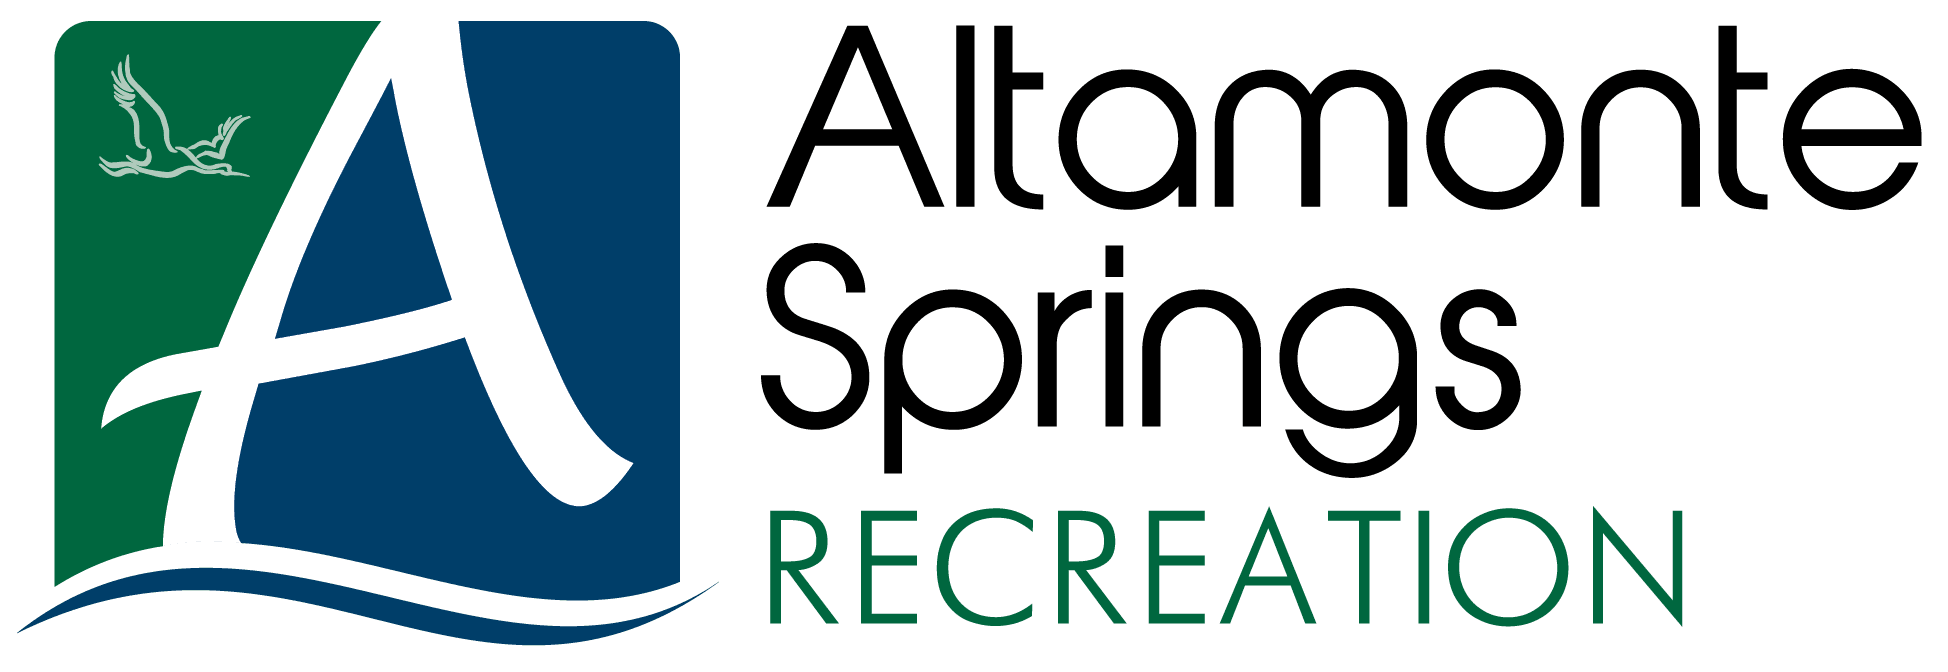 Altamonte Springs Recreation Logo